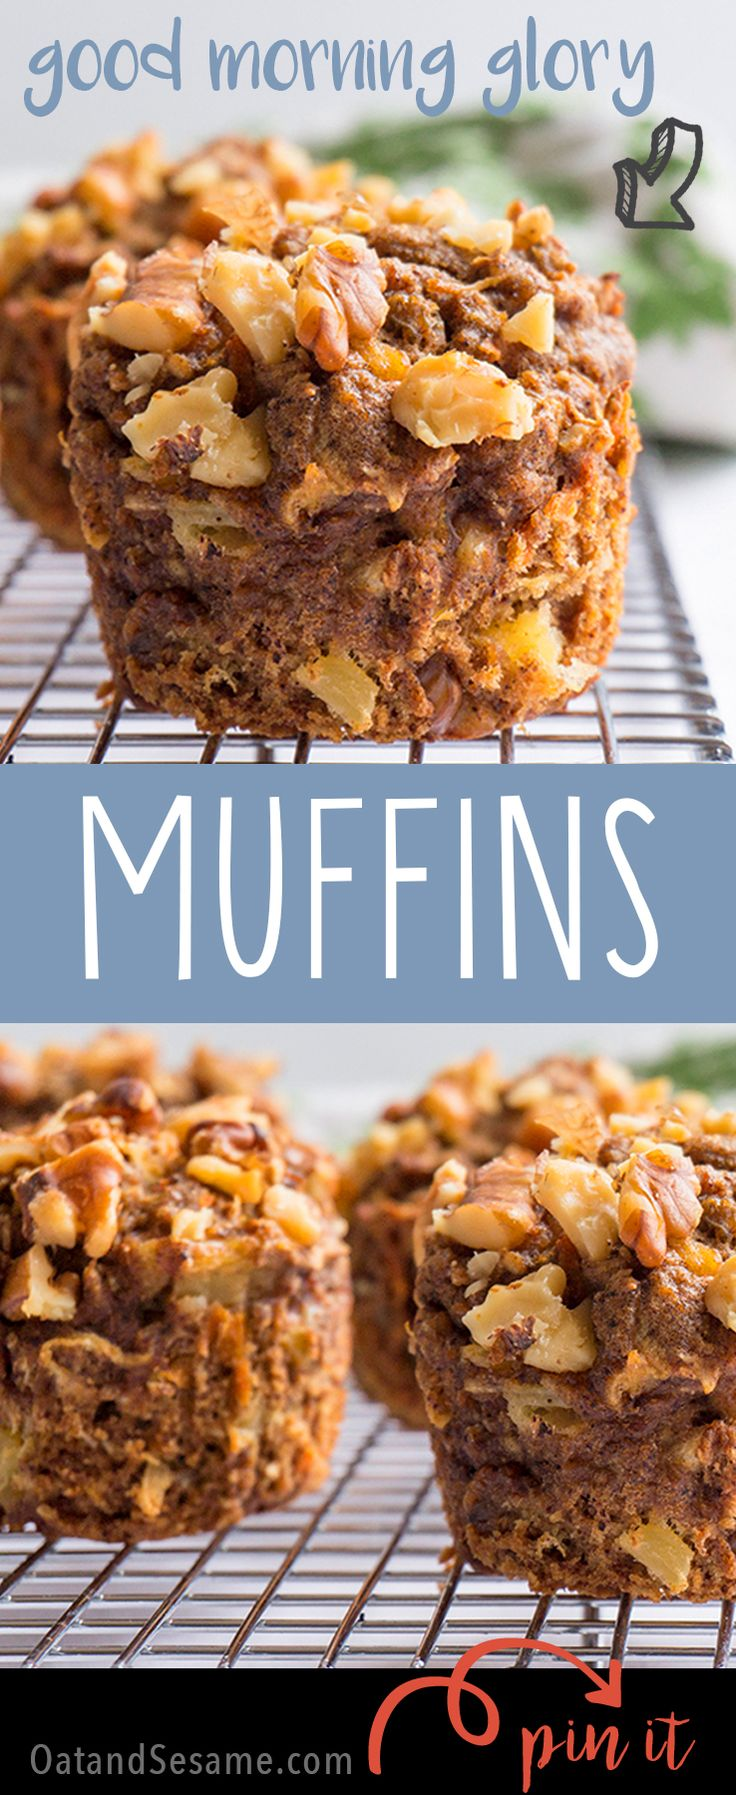 Good Morning Glory! A Glorious Healthy Muffin! | #recipe at OatandSesame.com